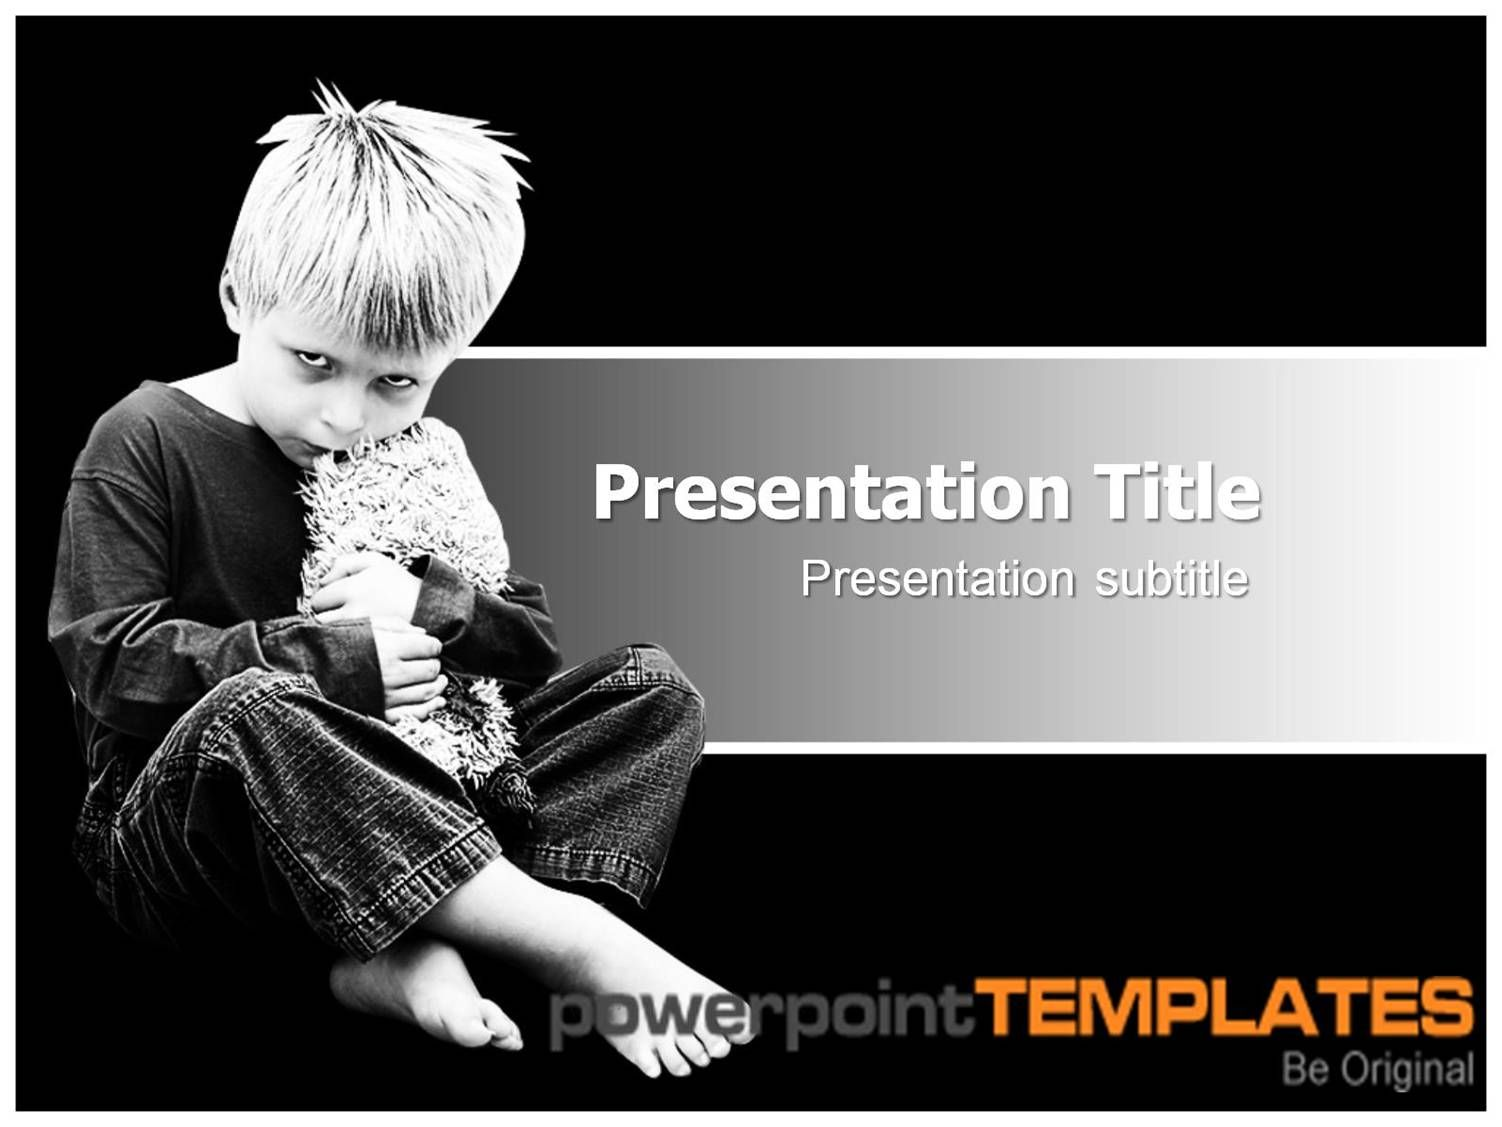 Download autism treatment powerpoint templates at httpwww download autism treatment powerpoint templates at httptemplatesforpowerpoint toneelgroepblik Image collections